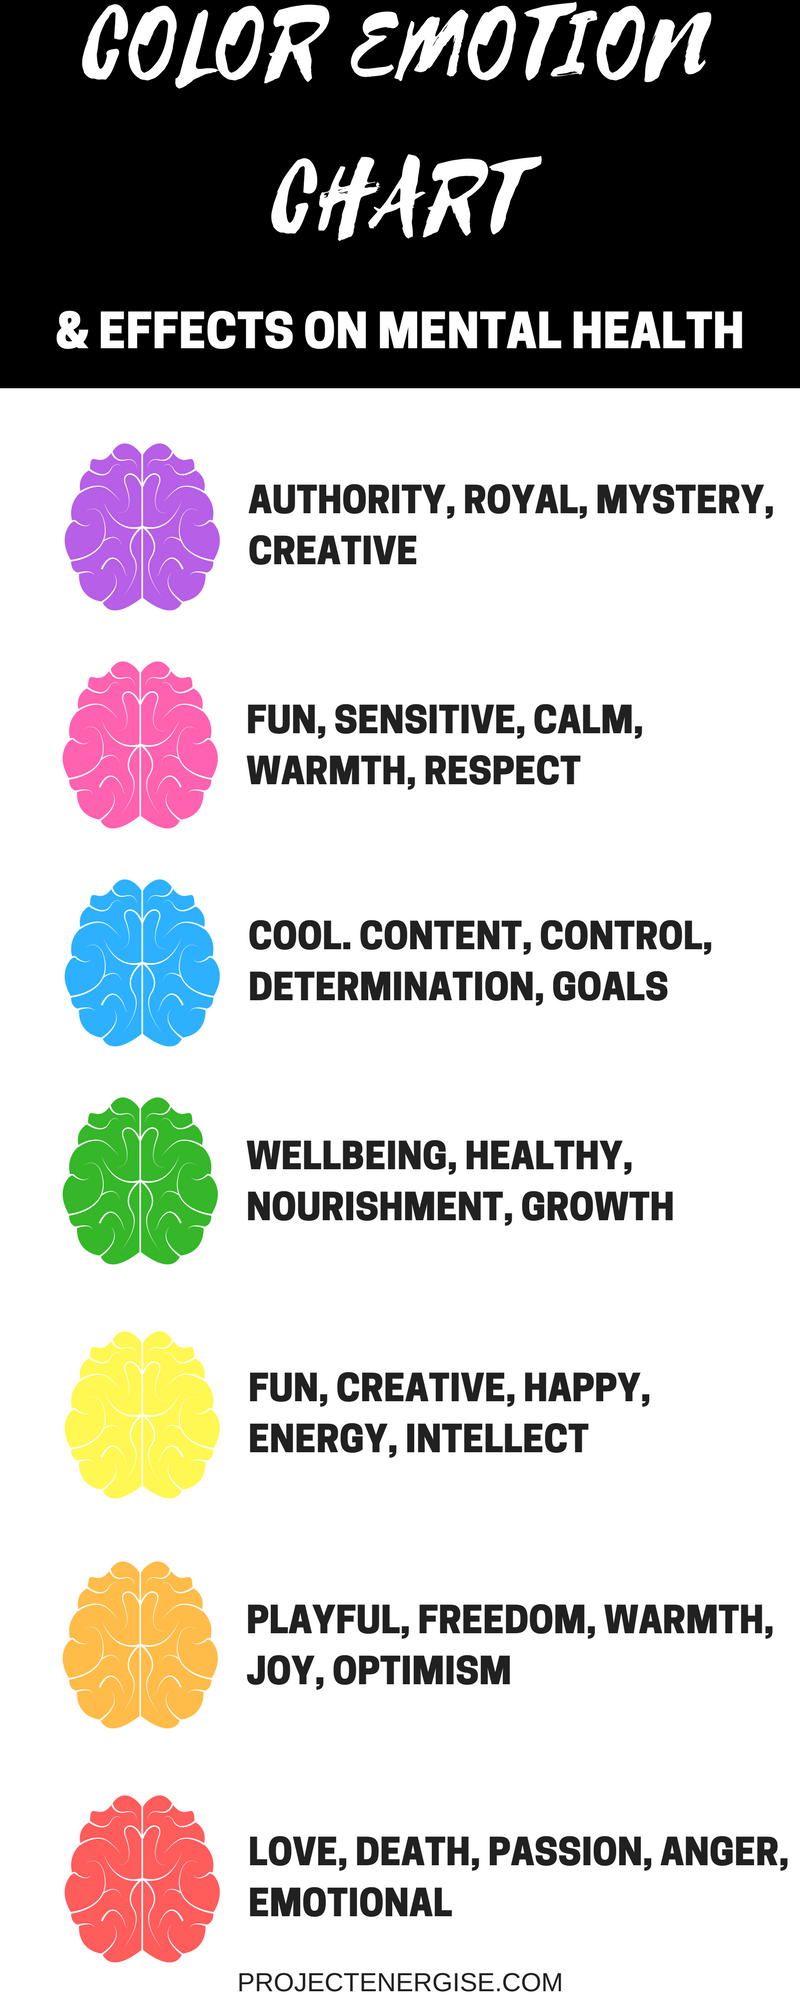 How Color Affects Your Mood And Mental Health Drastically My Wwwdocstoccom Docs 25142800 Seriesandparallelcircuitworksheet The Emotion Chart They Affect